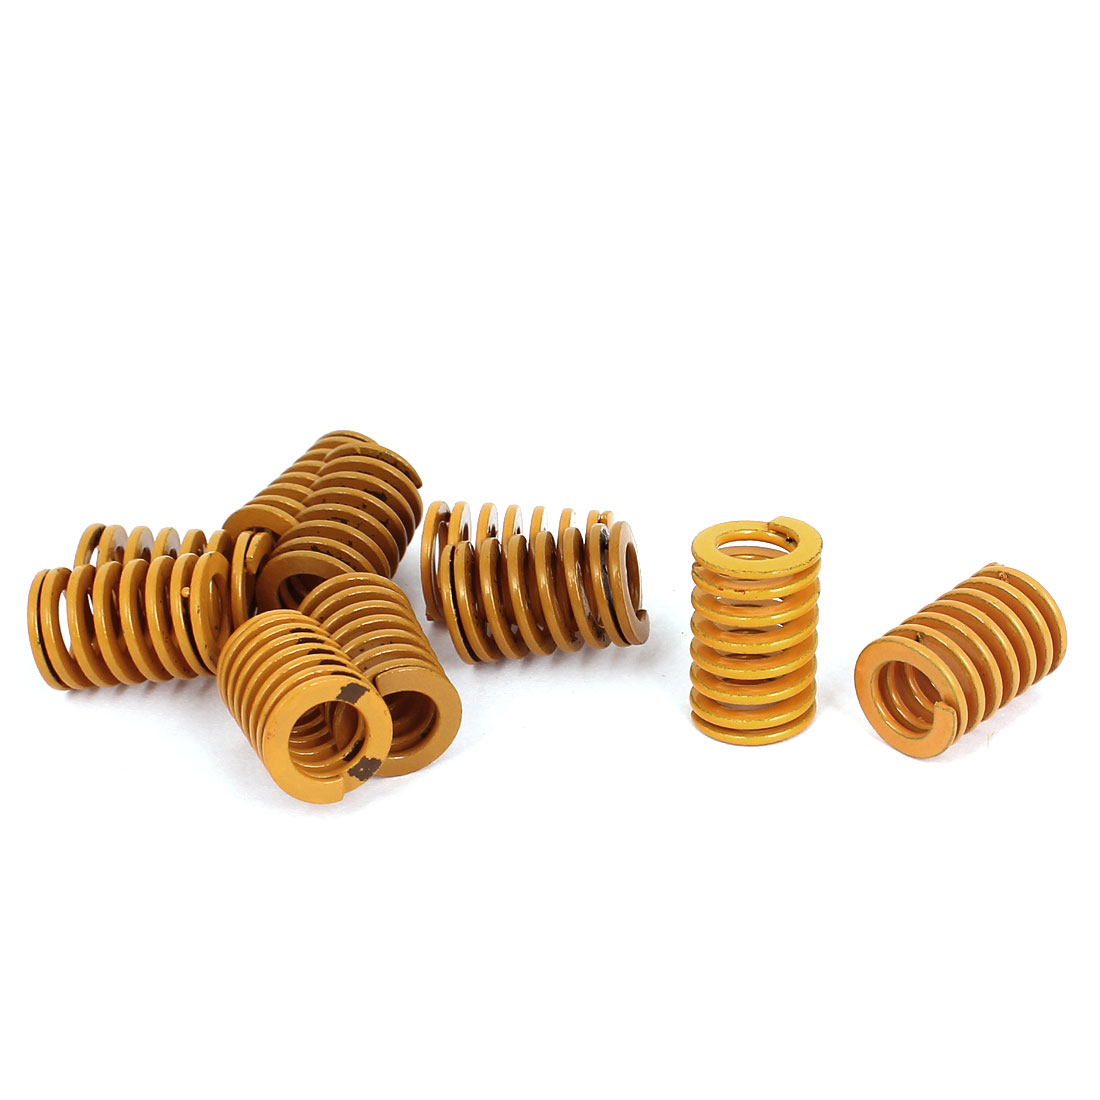 14mm OD 20mm Long Light Load Stamping Compression Mold Die Spring Yellow 10pcs